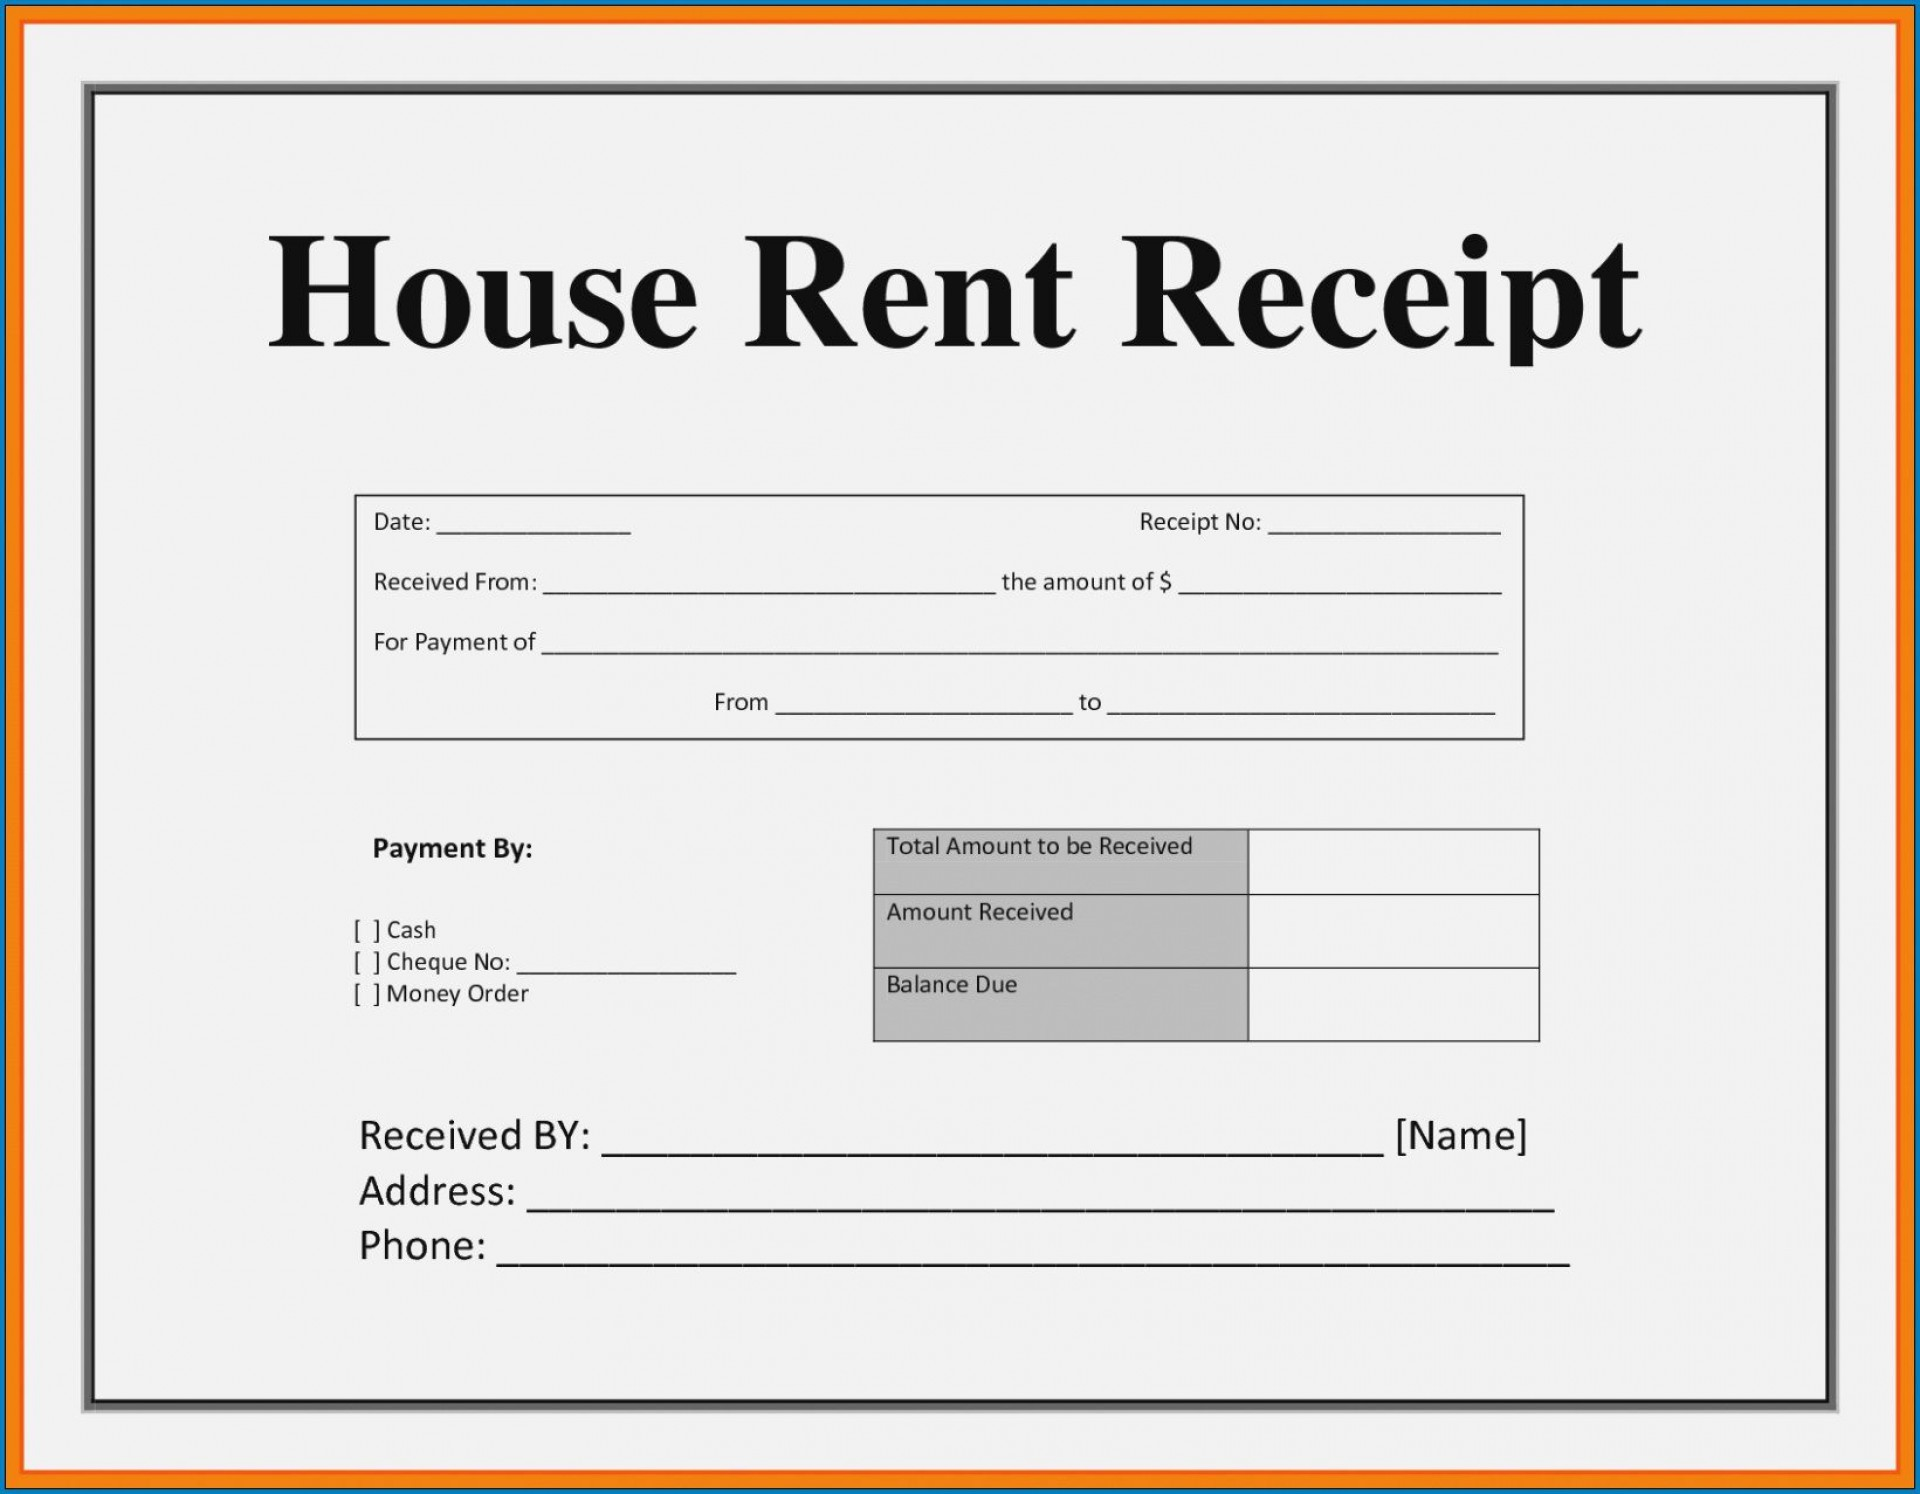 003 Striking House Rent Receipt Sample Doc Inspiration  Template India Bill Format Word Document Pdf Download1920